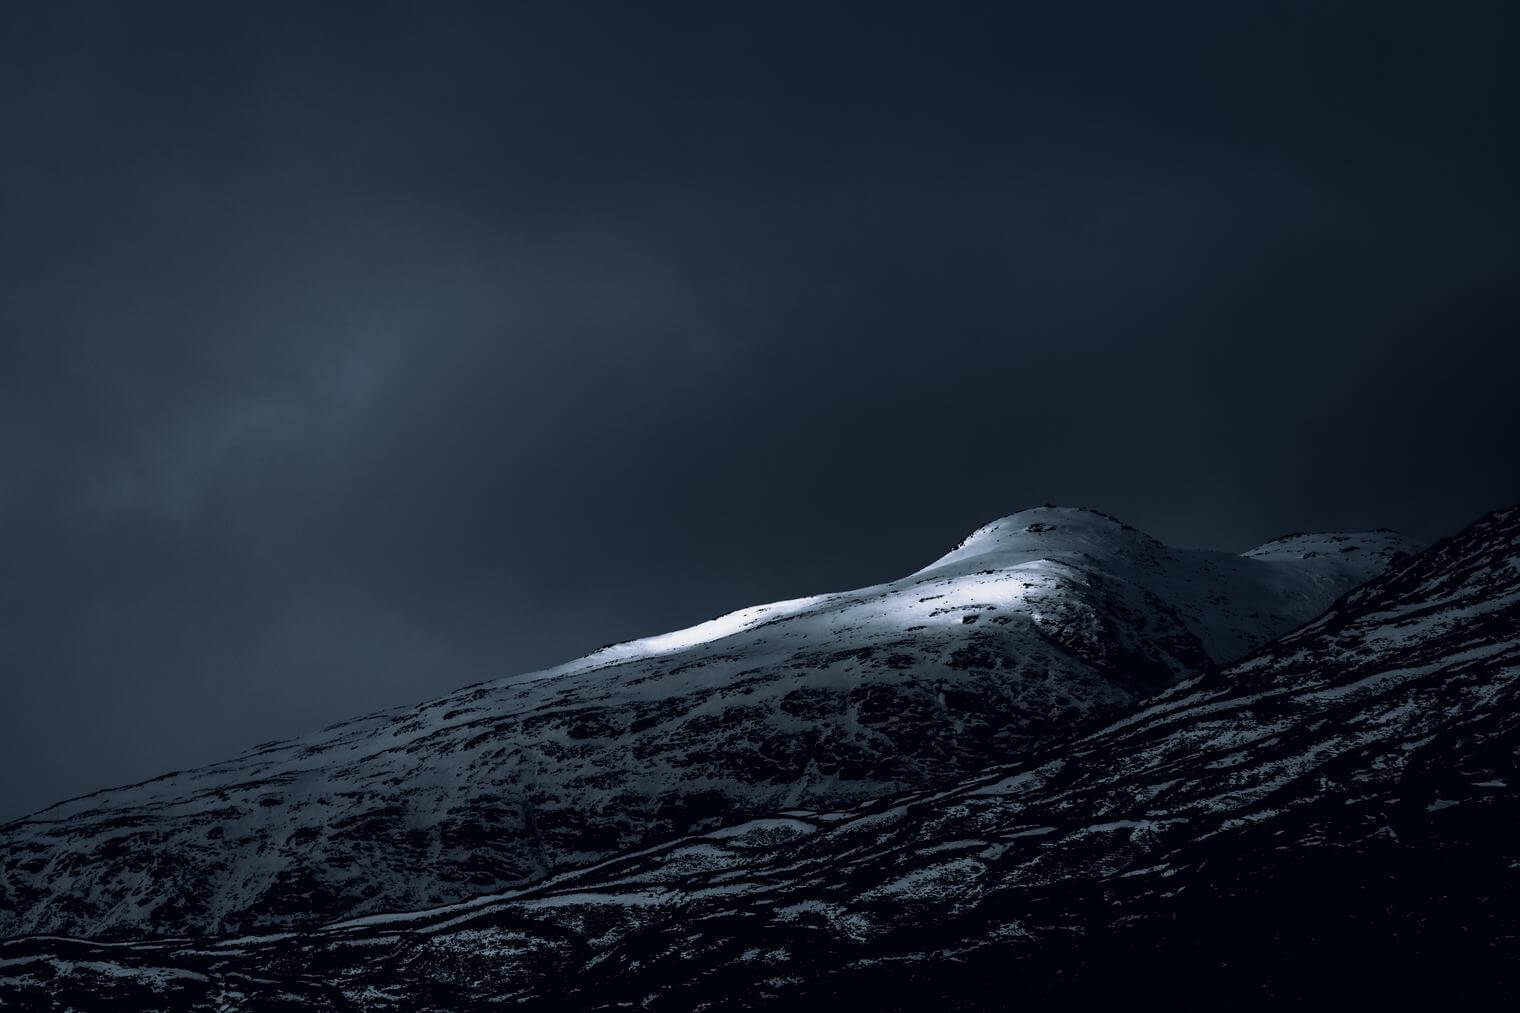 Mountain with Snow in Dark Tones